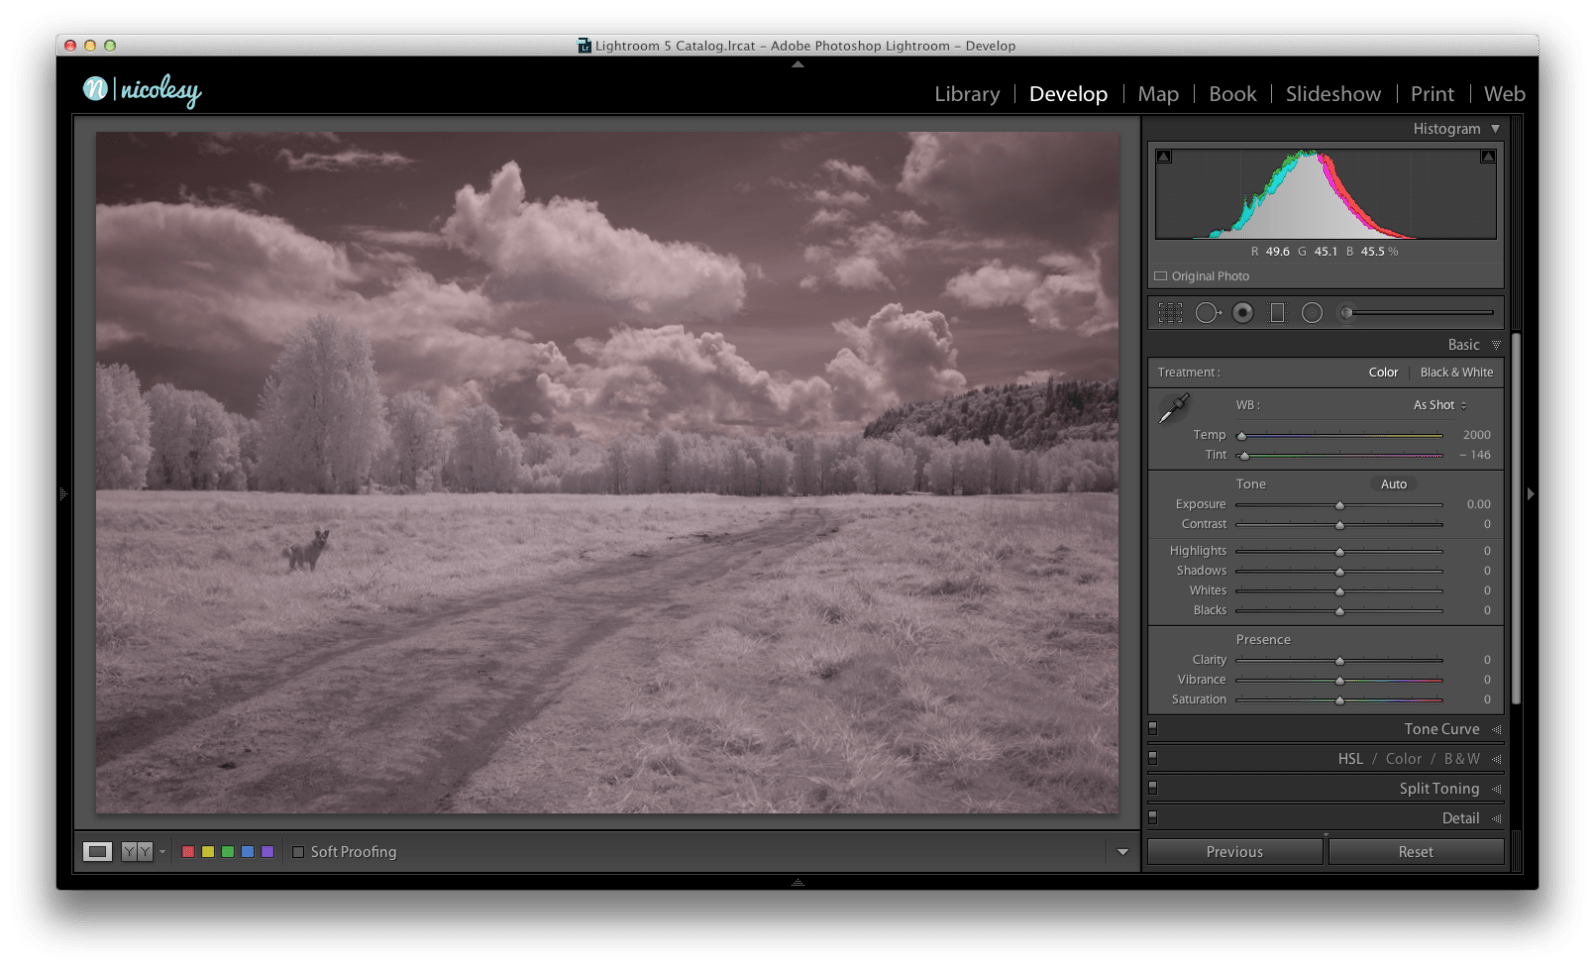 1. I open the image I want to work on in Lightroom. The image looks washed out and muddy, so it definitely needs some work.